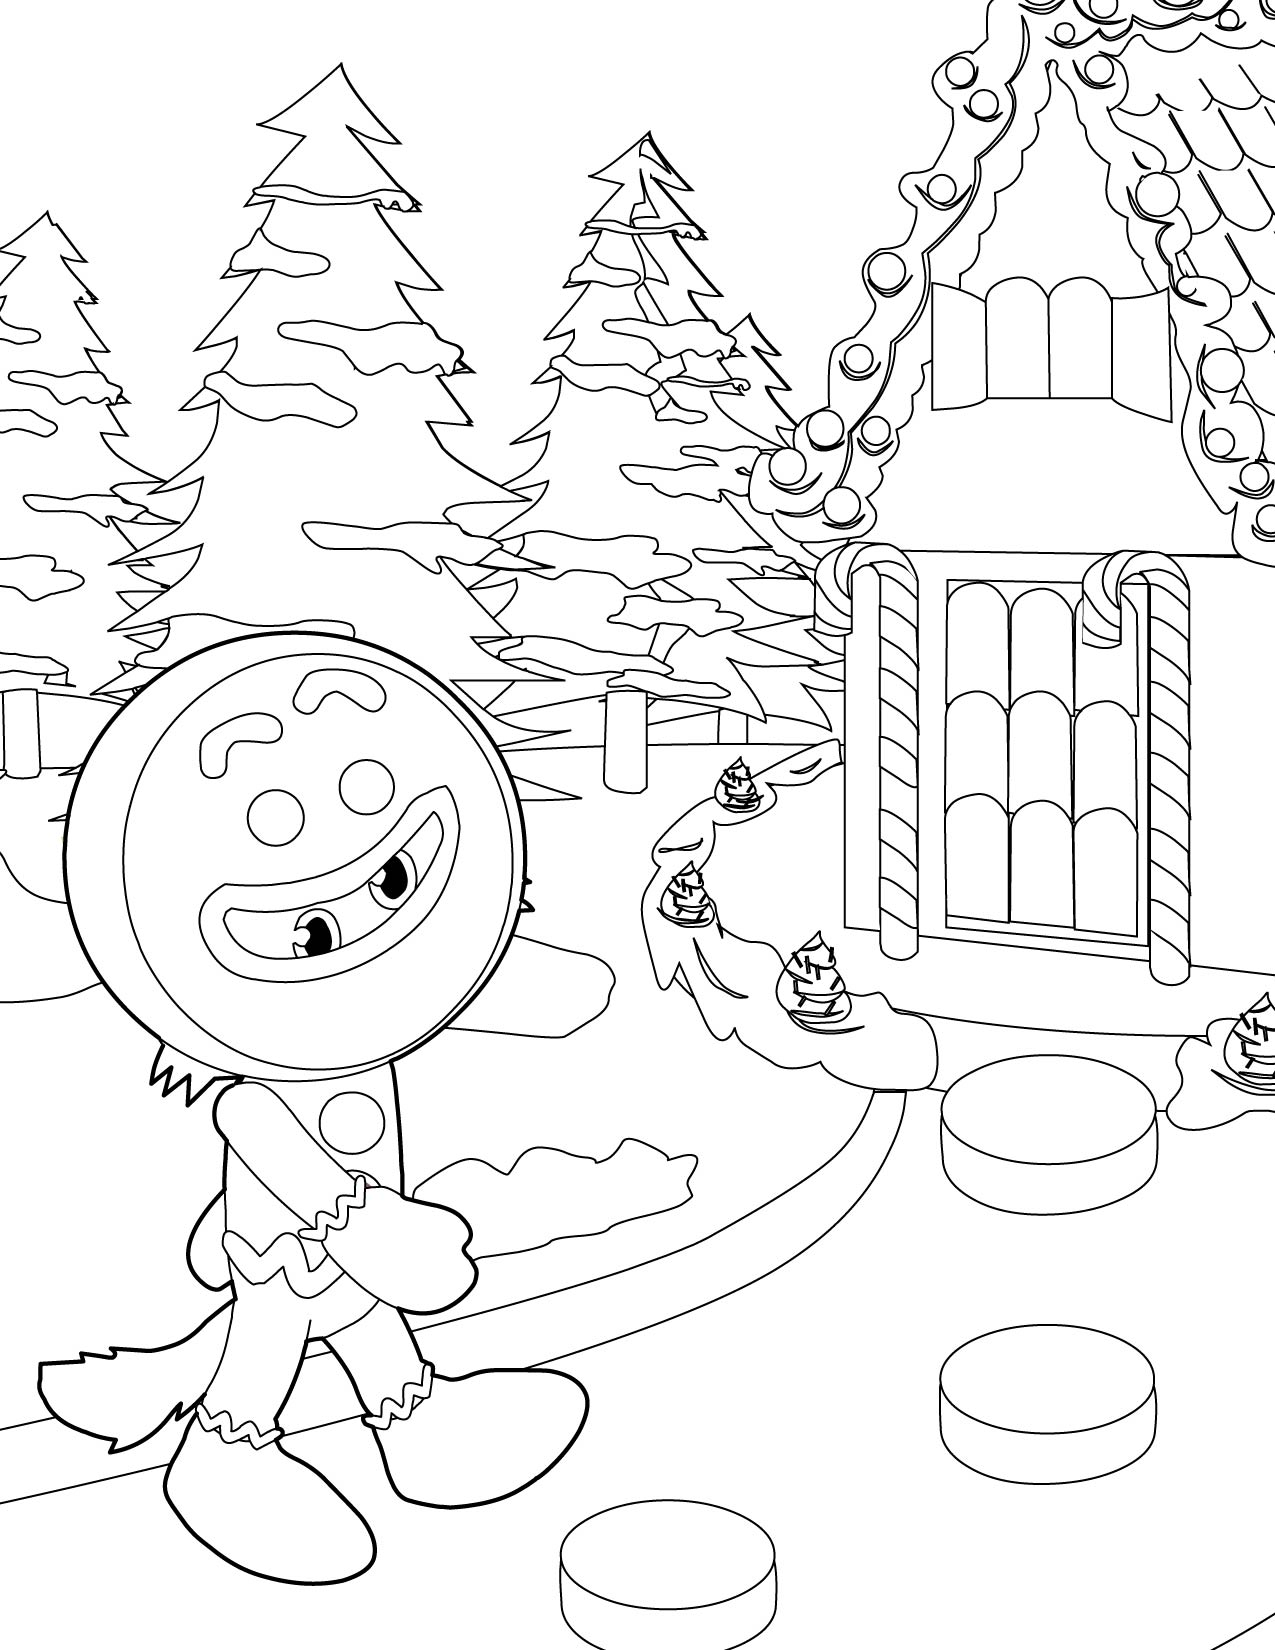 gingerbread house colouring pages gingerbread house coloring page with images christmas pages gingerbread house colouring